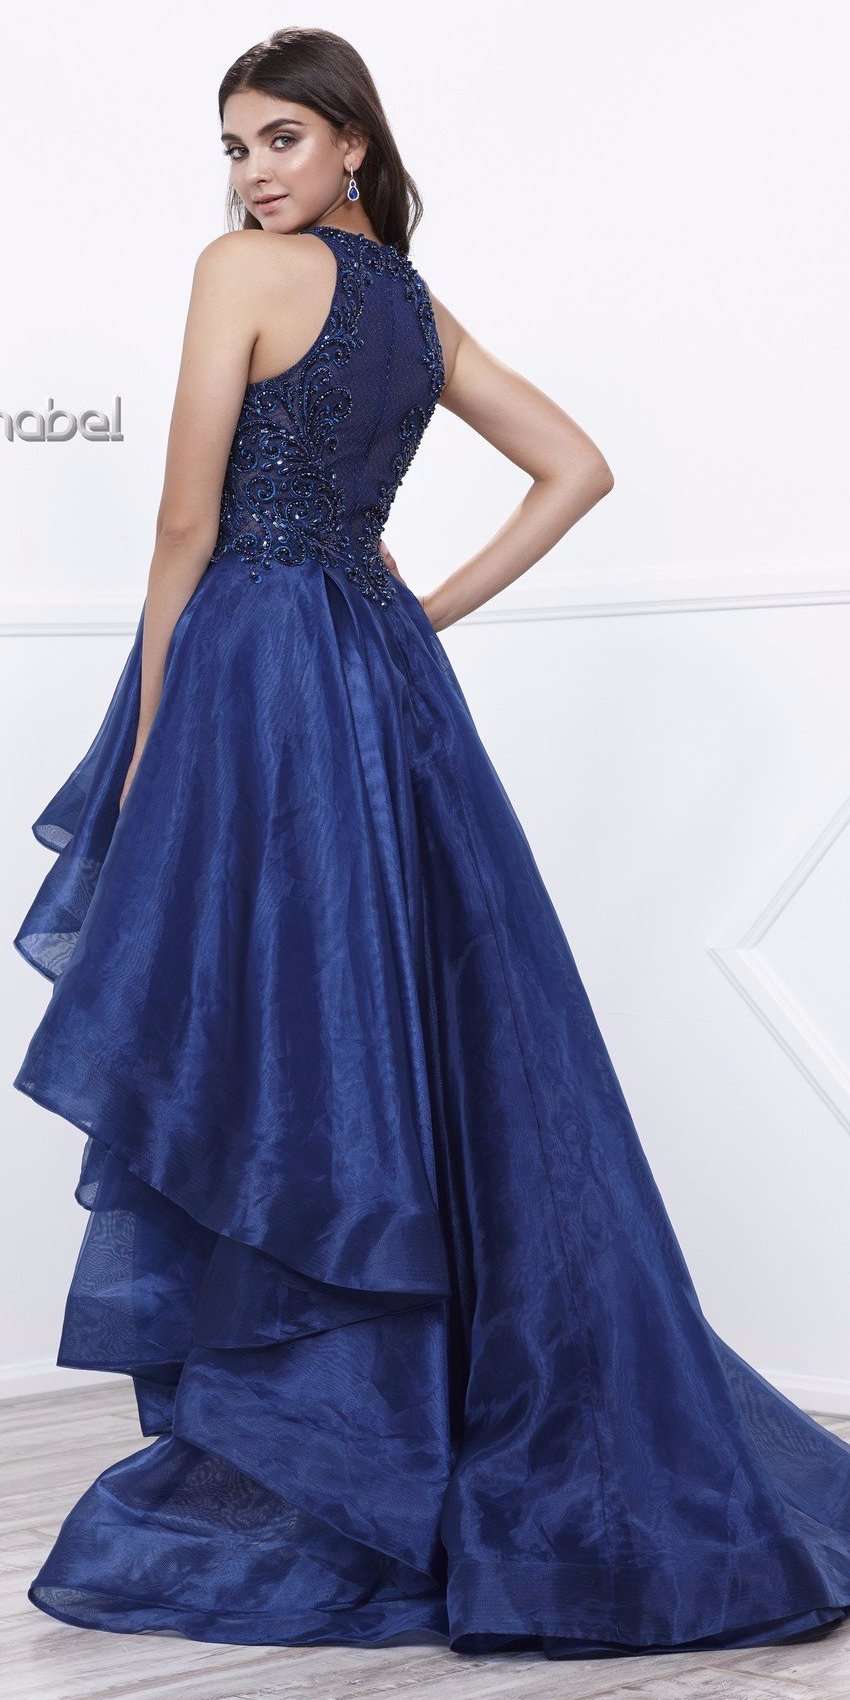 9089684d0d6 Navy Blue High-Low Prom Dress with Bead Applique Bodice and Train ...